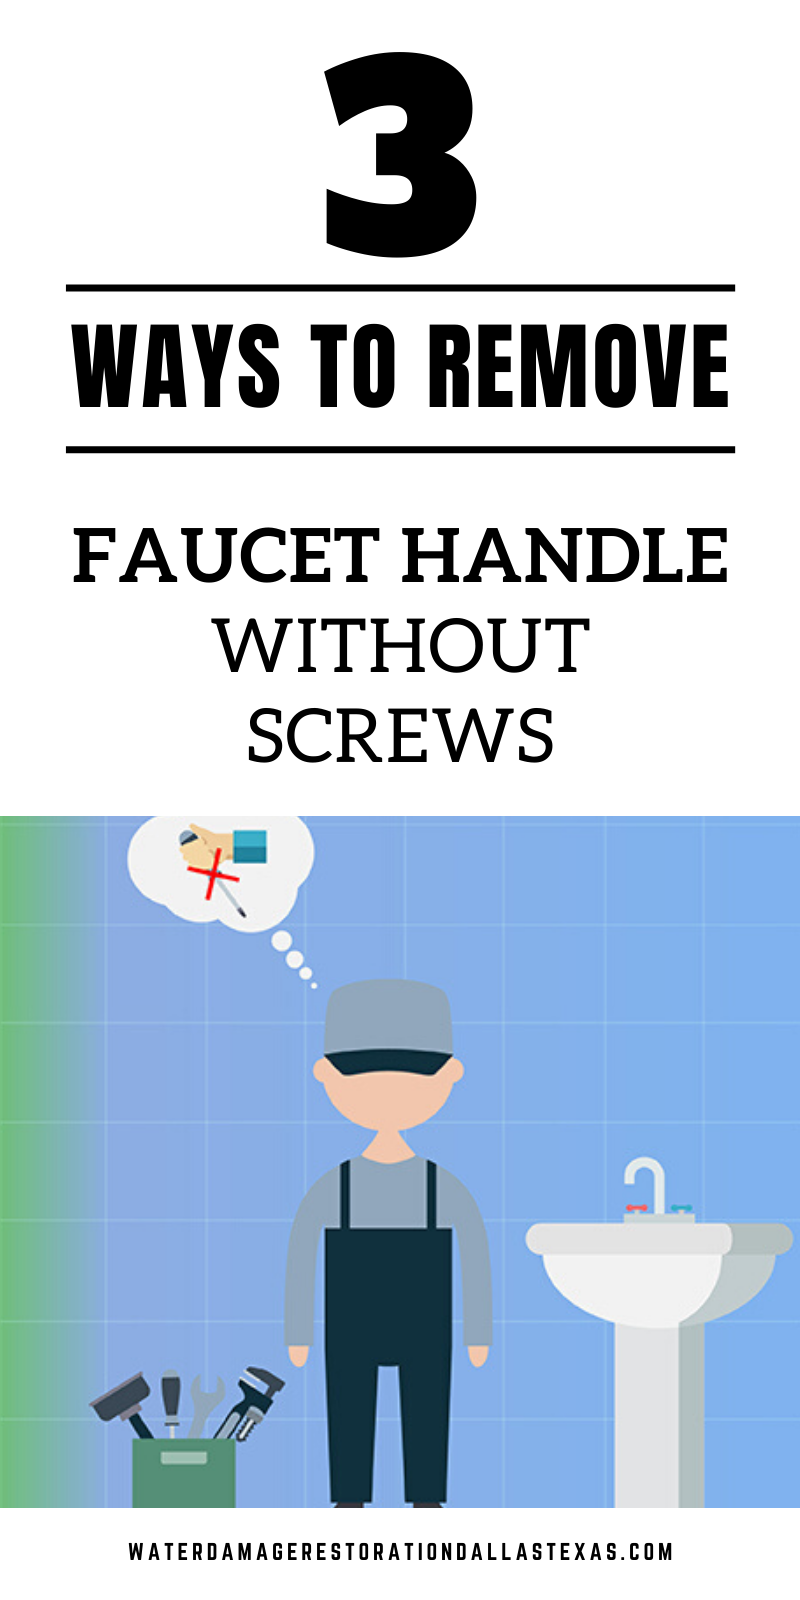 3 Ways To Remove Faucet Handle Without Screws Faucet Handles How To Remove Faucet